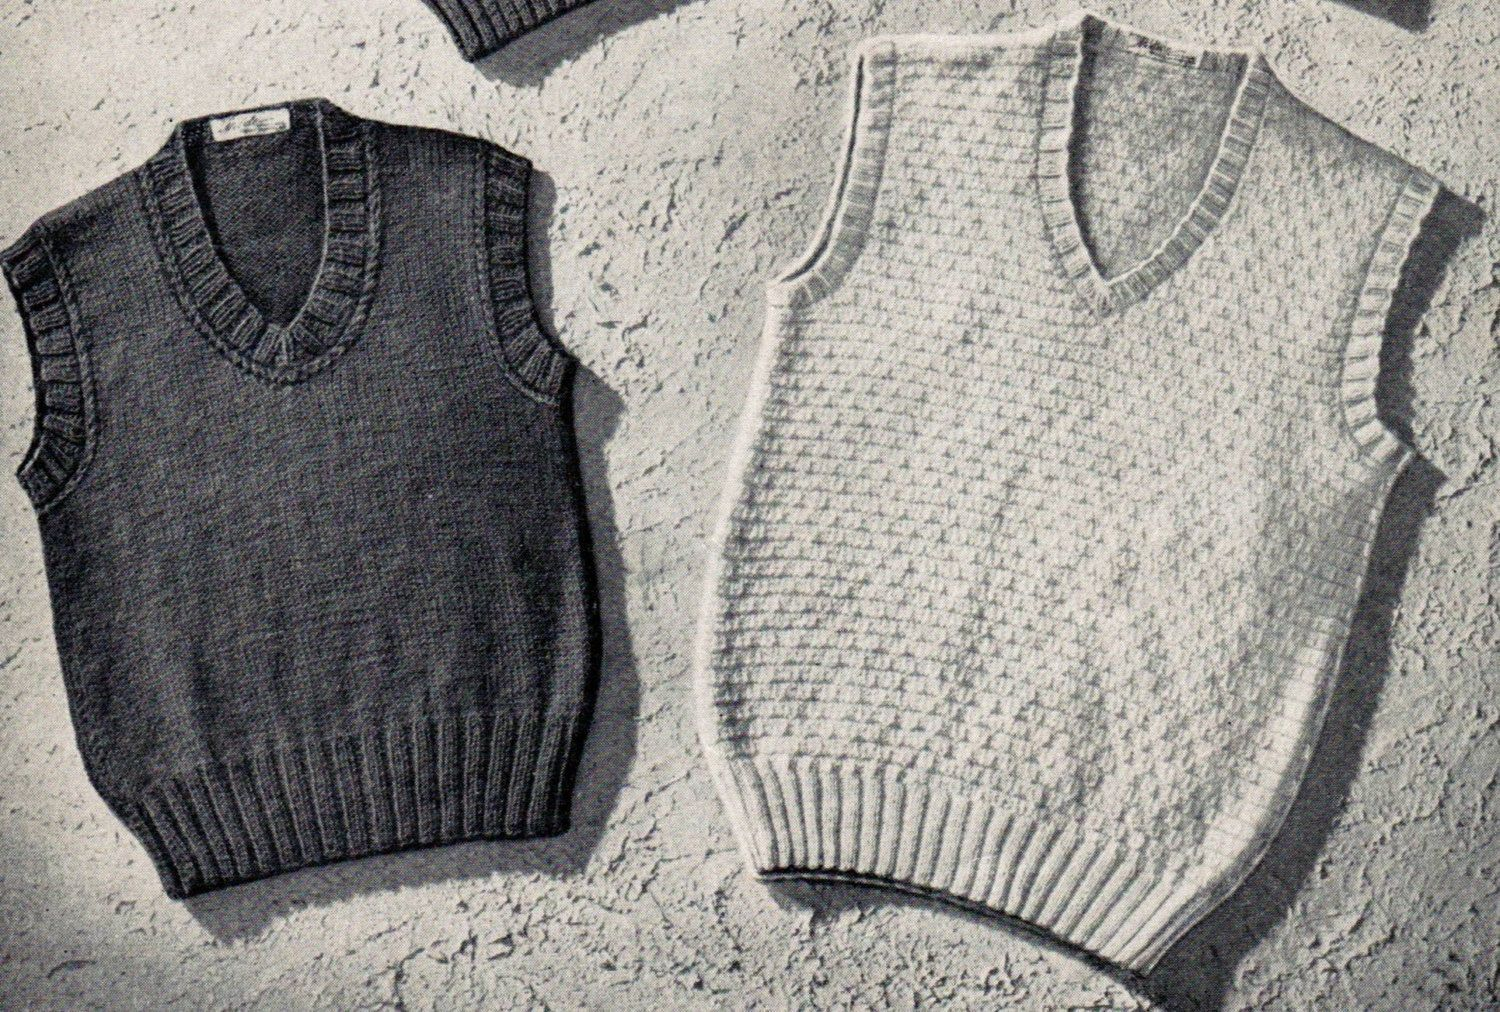 27493bafd An adorable set of 4 knitting patterns for boys sleeveless sweaters from  the 1940s. You